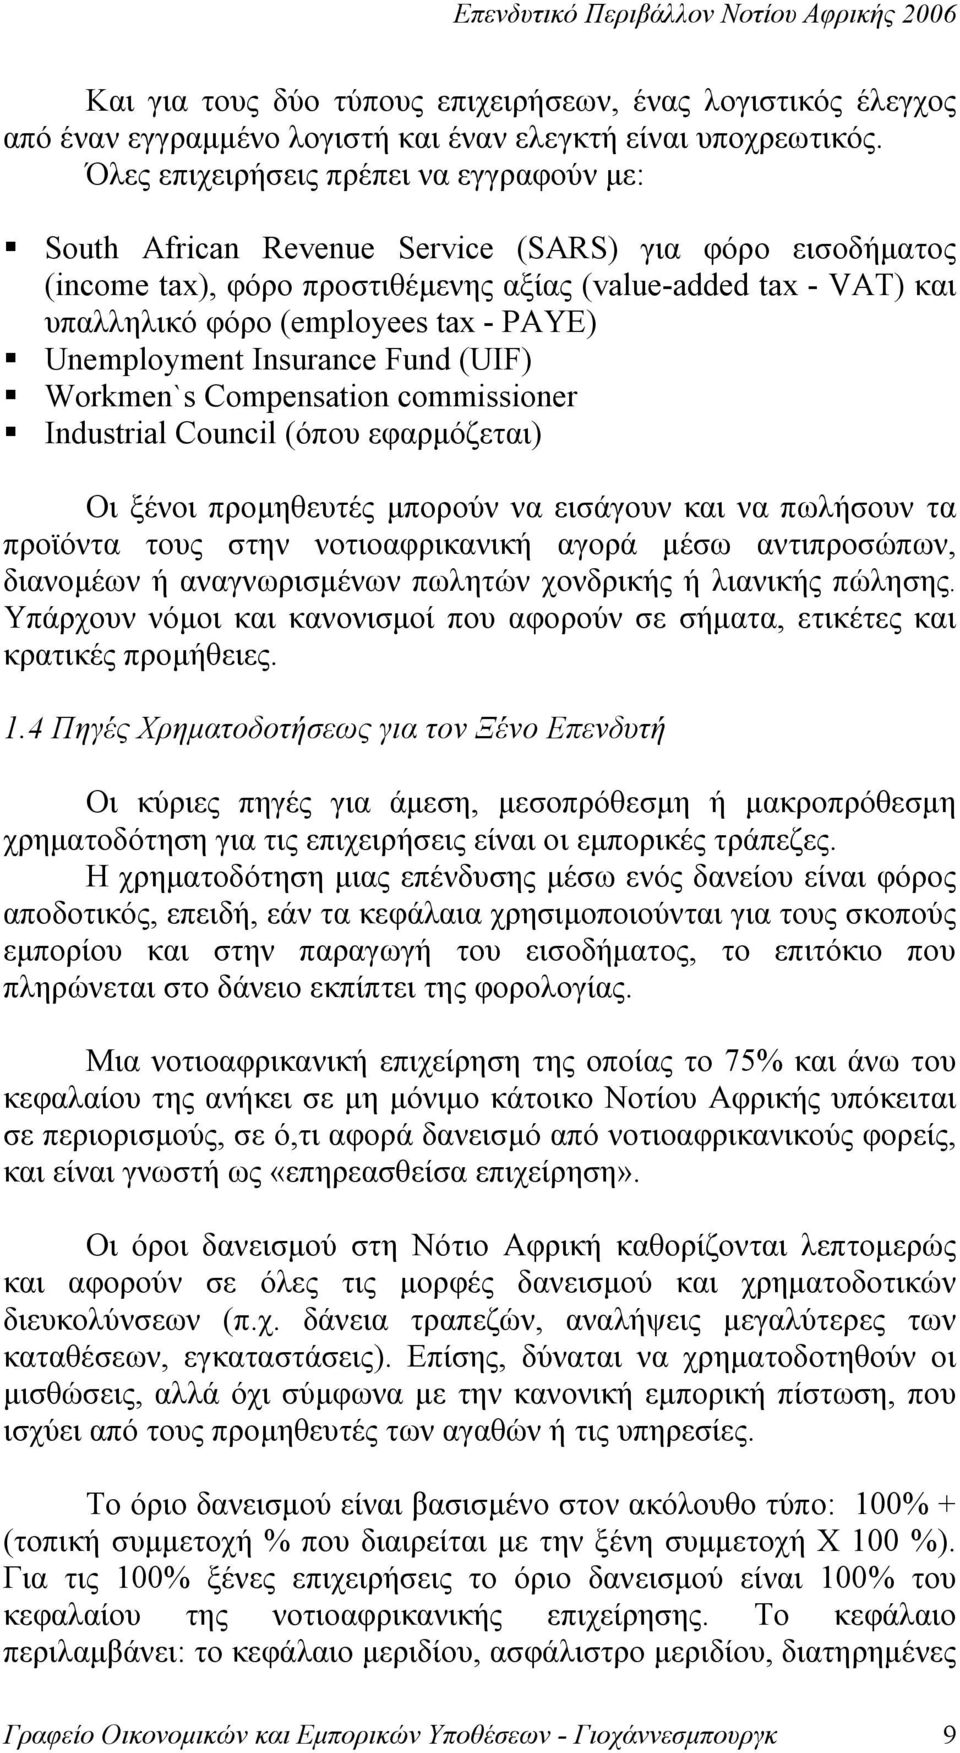 PAYE) Unemployment Insurance Fund (UIF) Workmen`s Compensation commissioner Industrial Council (όπου εφαρμόζεται) Οι ξένοι προμηθευτές μπορούν να εισάγουν και να πωλήσουν τα προϊόντα τους στην